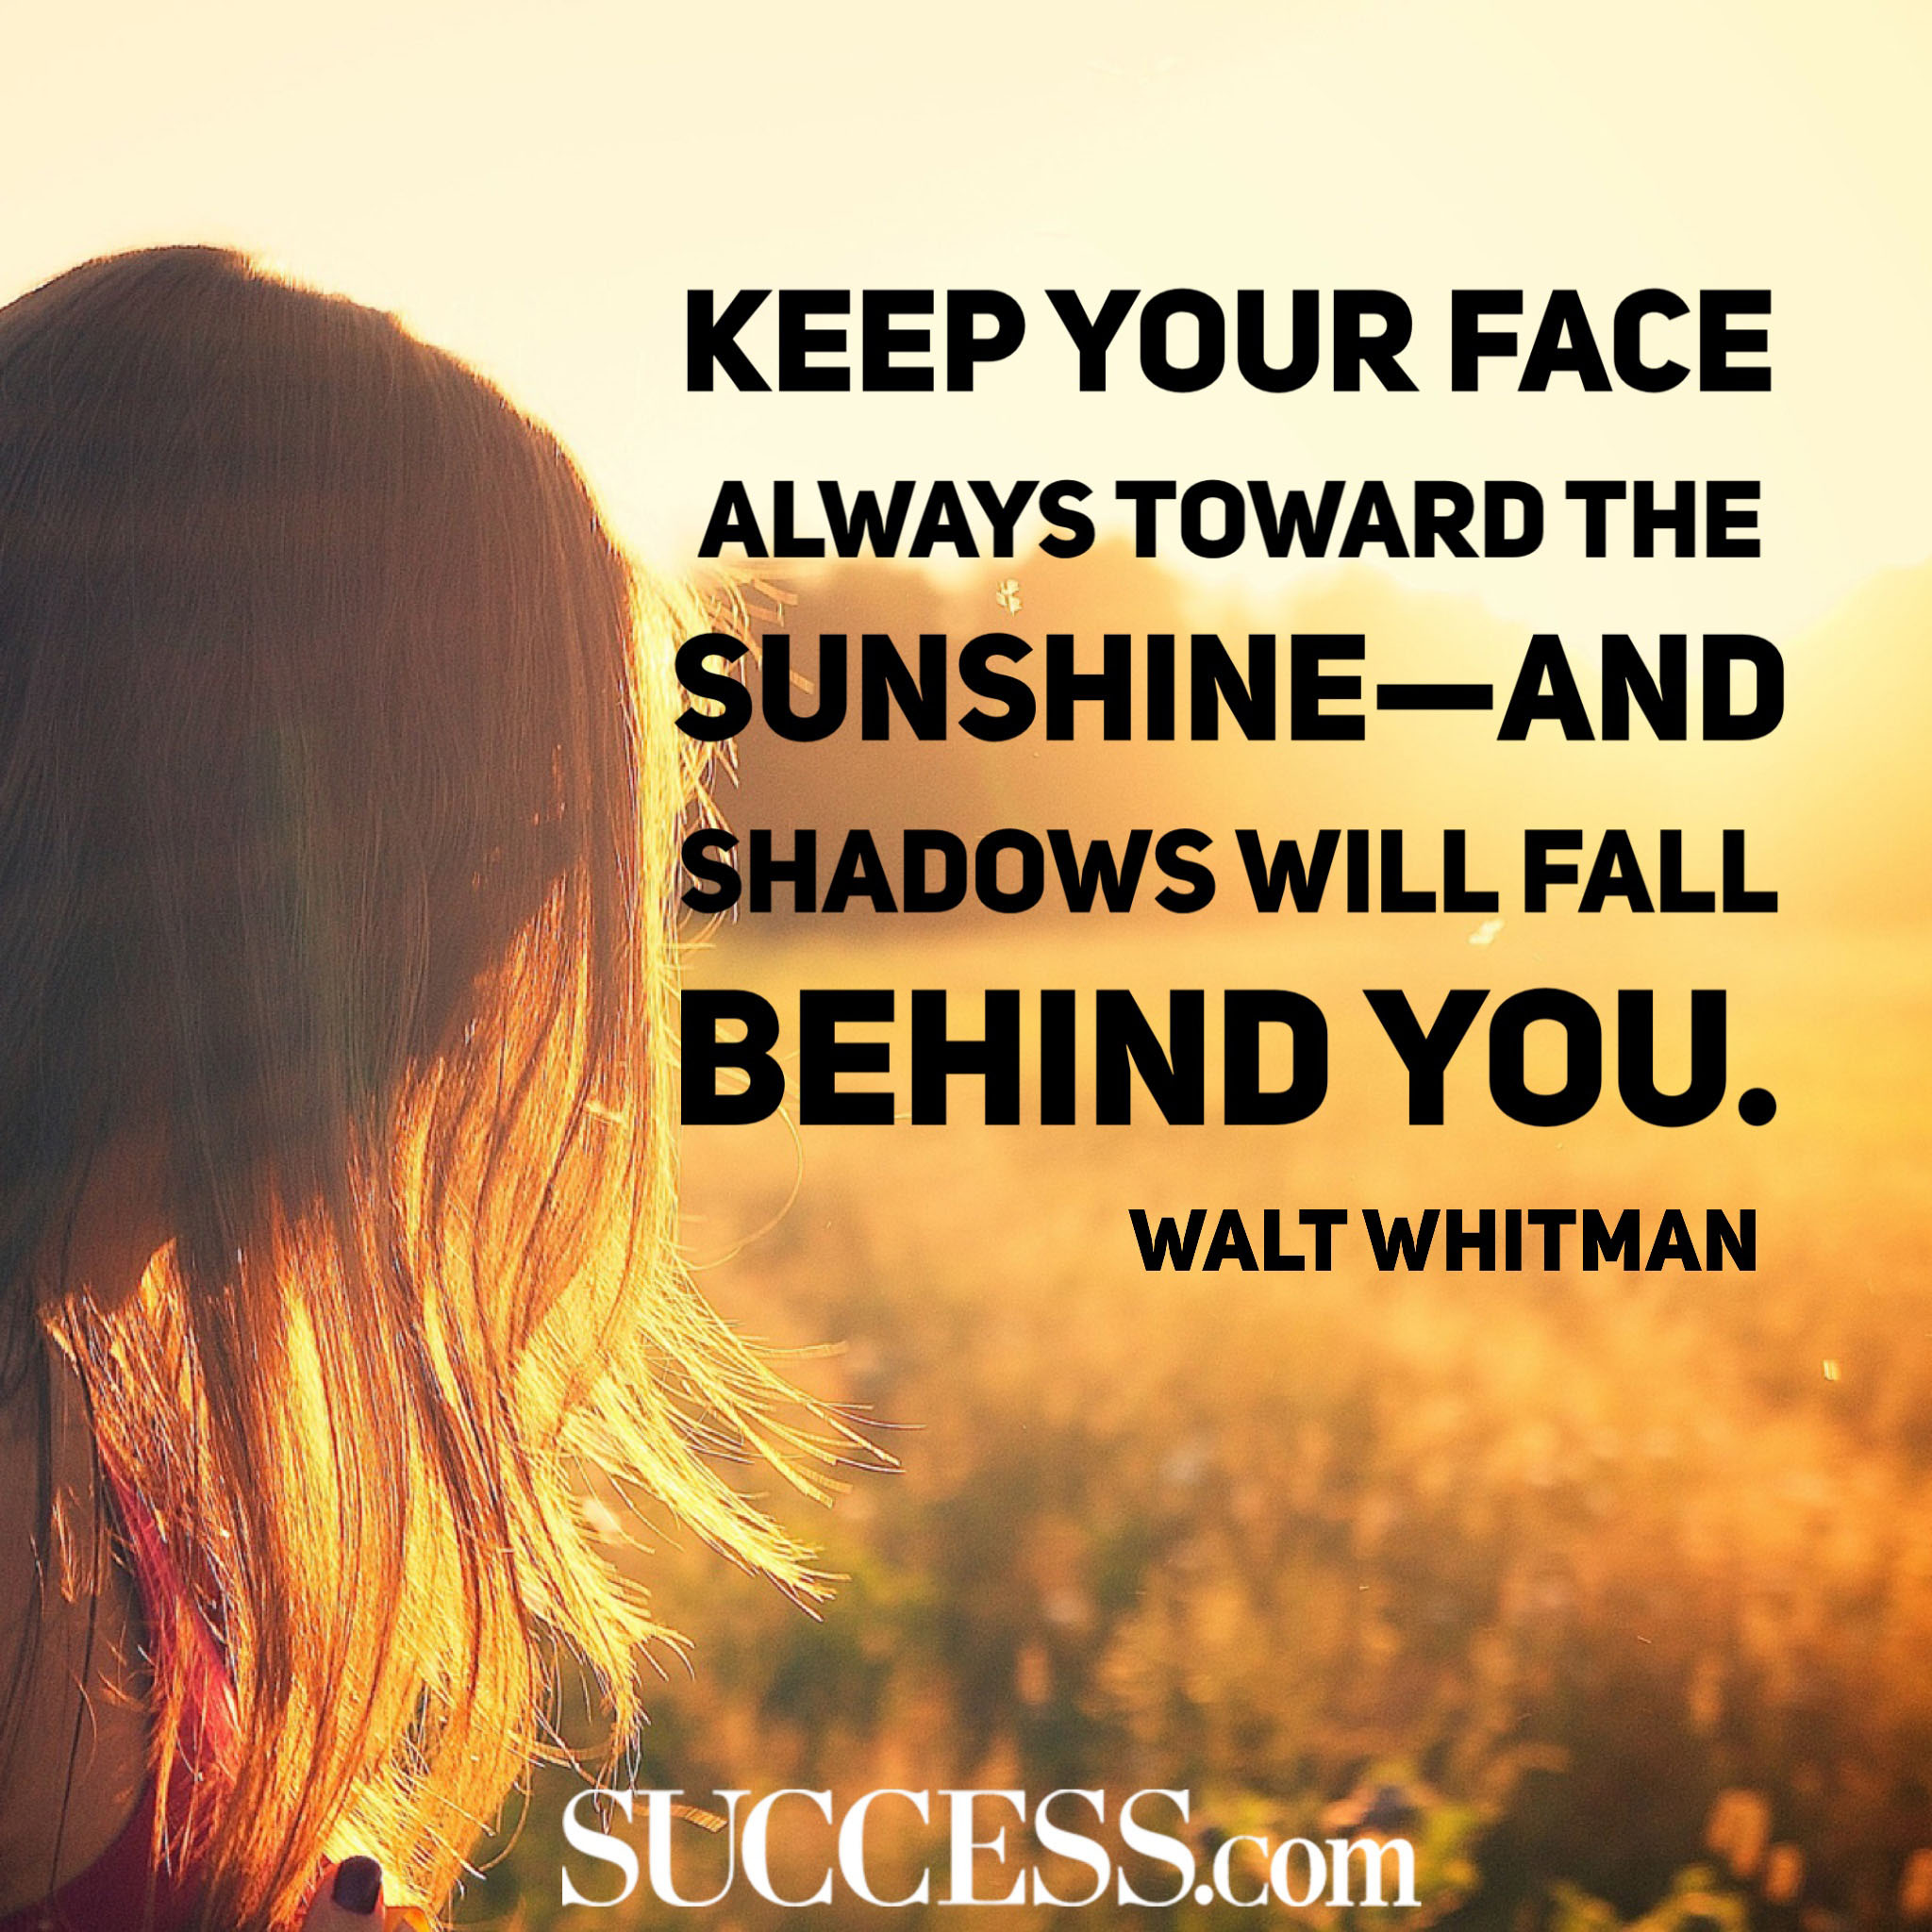 21 Of The Most Inspirational Quotes